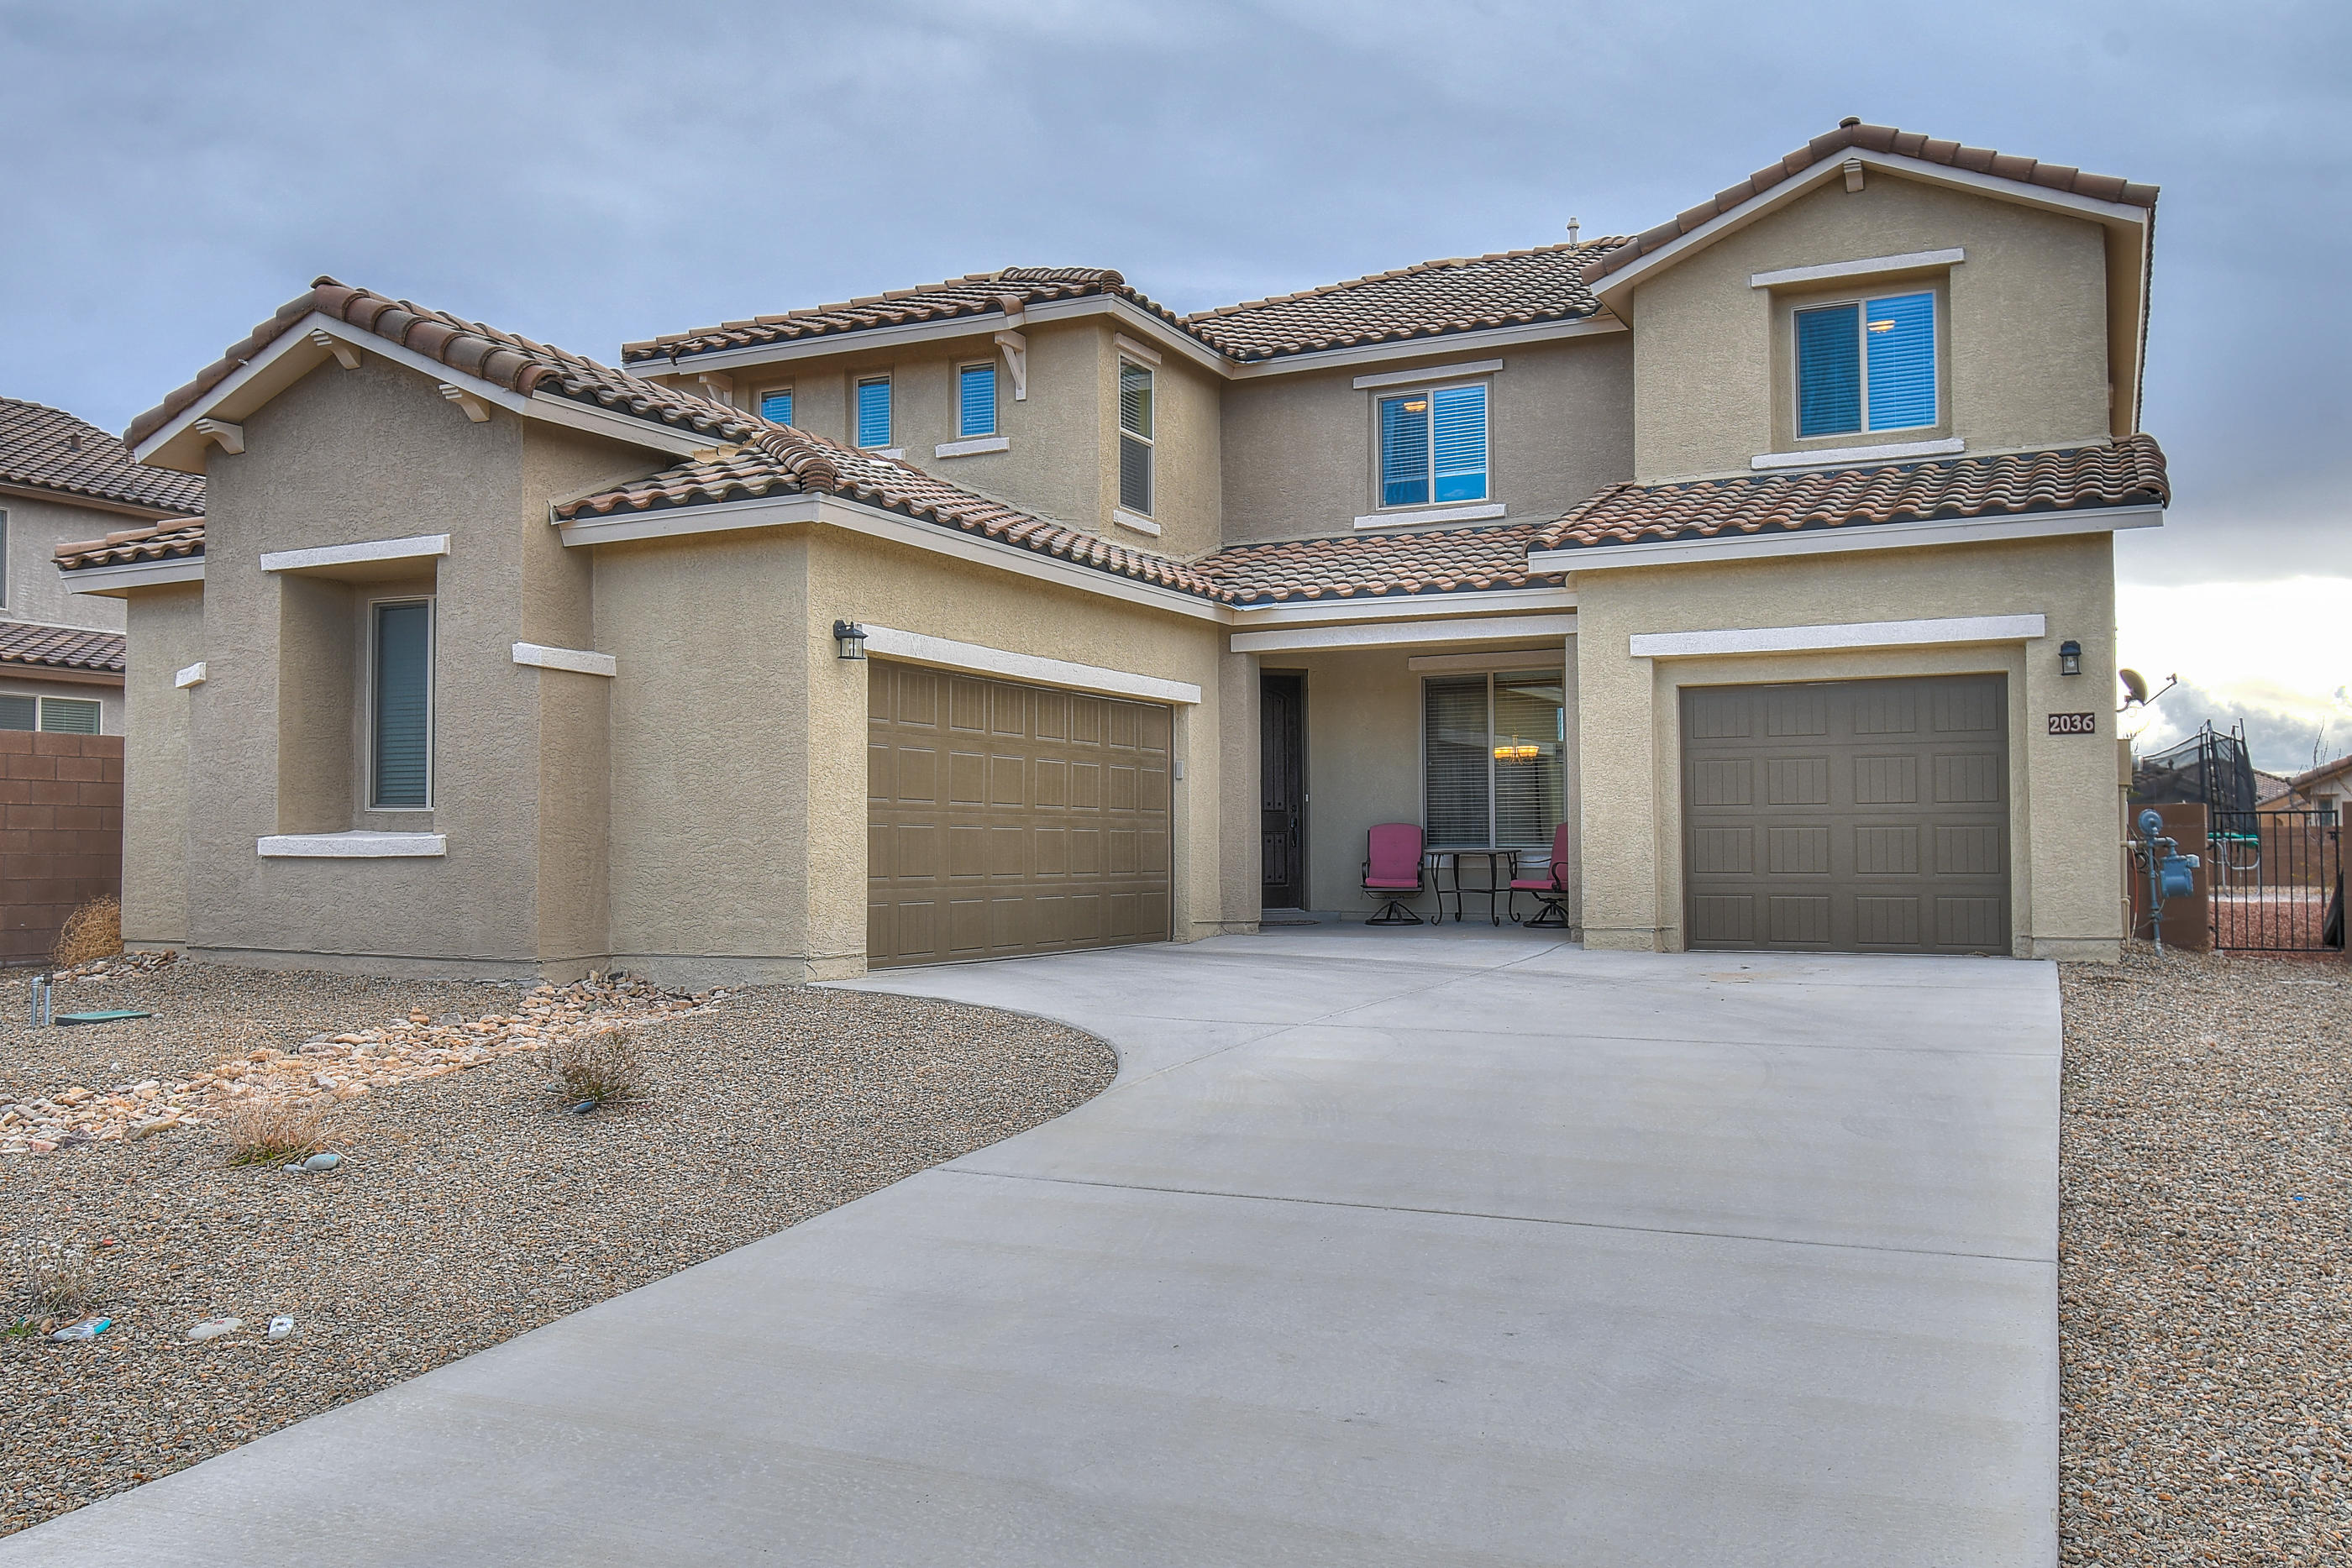 2036 NW Abo Canyon Drive, Northwest Albuquerque and Northwest Heights, New Mexico